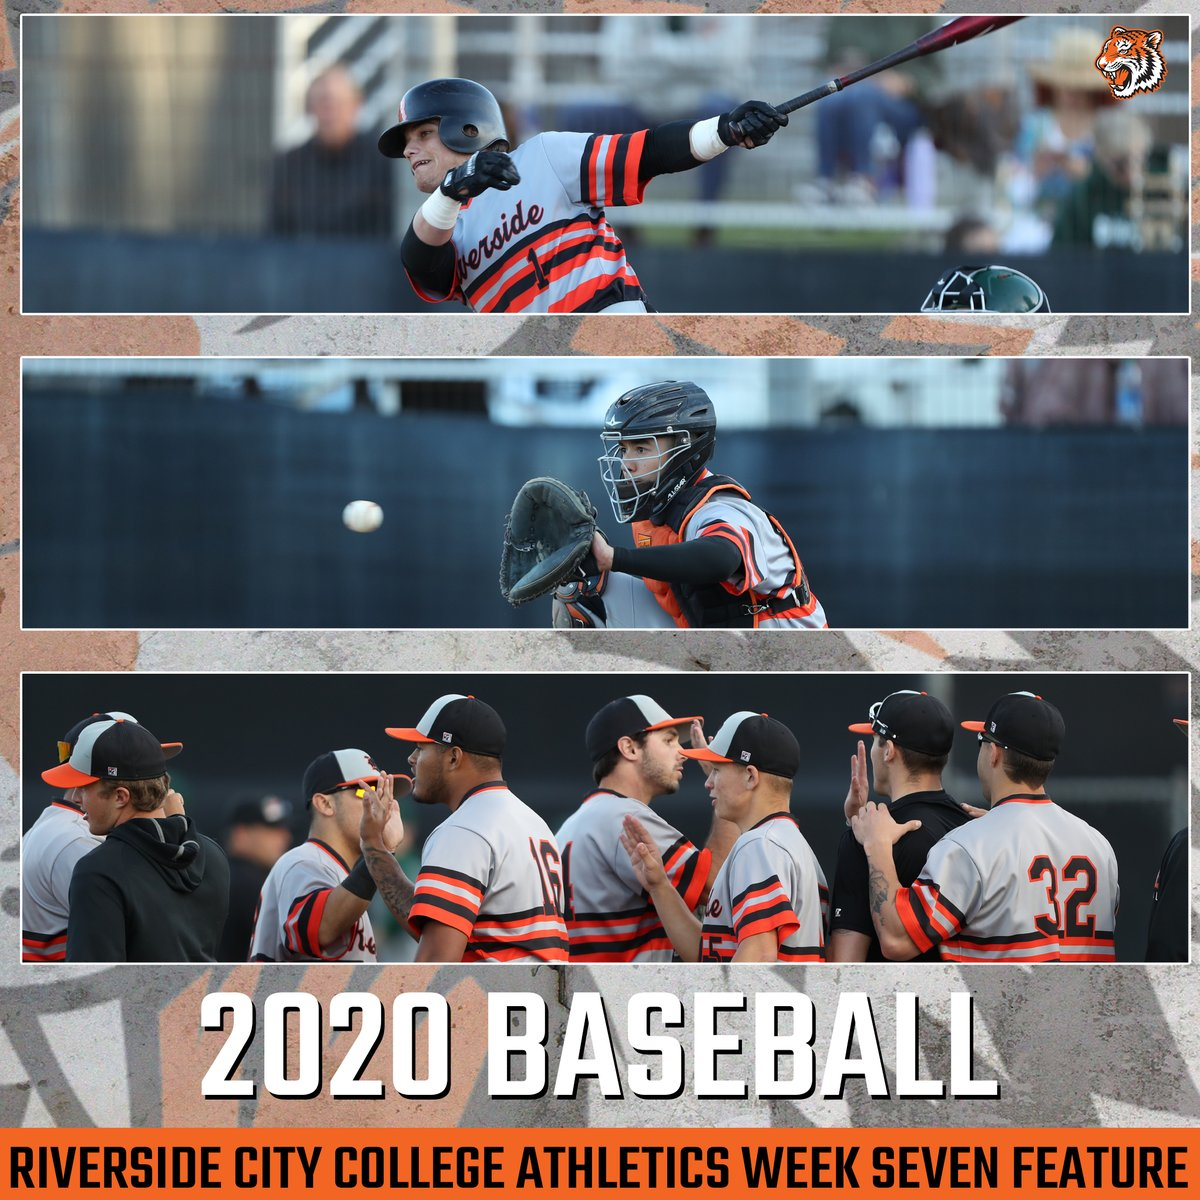 A Foundation of Greatness. --- A powerhouse since the mid-60s, take a glance at how @baseball_RCC has been one of the best programs in the state for a number of decades. Link in bio. #TheCommunitysCollege https://t.co/Du8wszvVXT